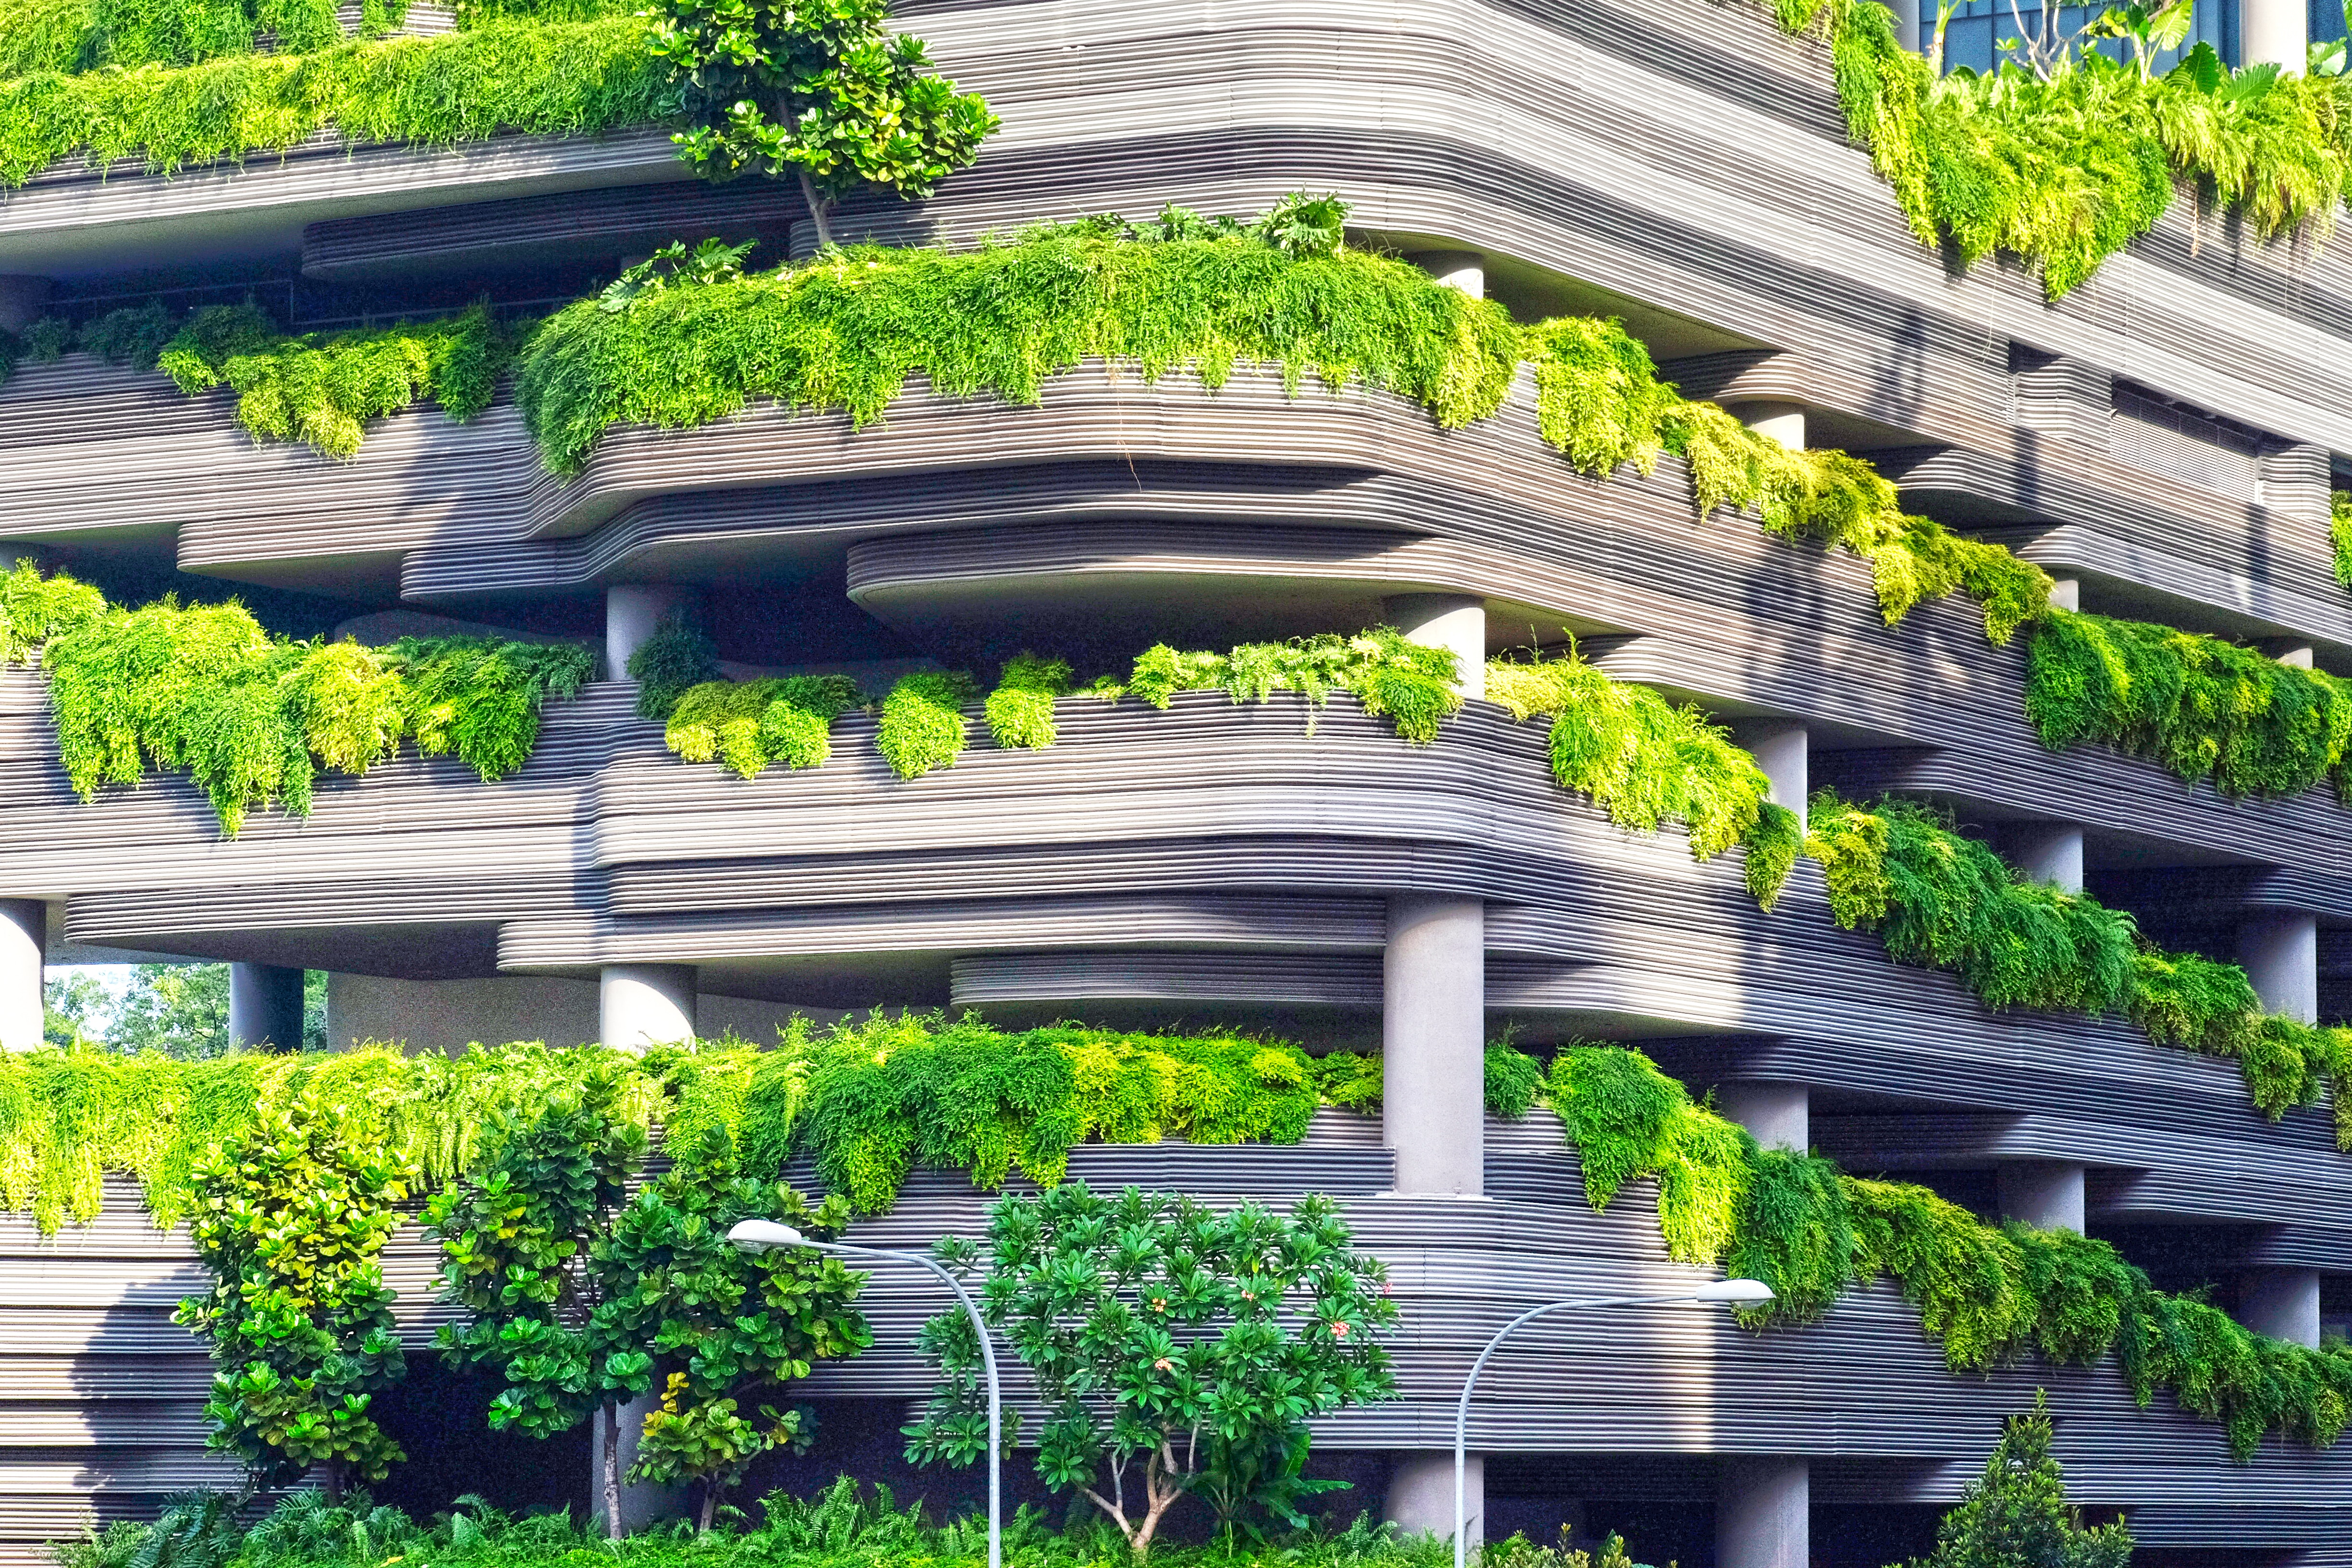 contemporary architecture building with greenery